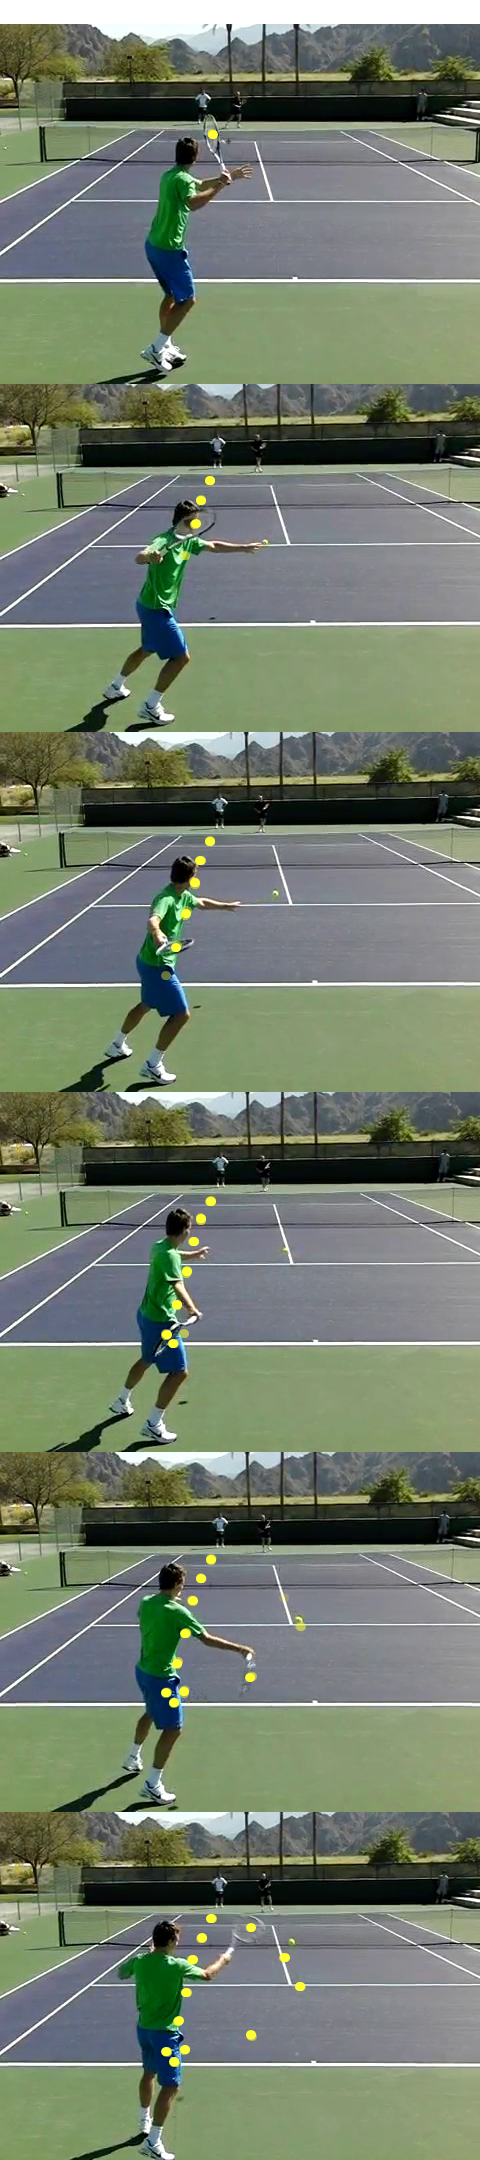 forehand_introduction_berdych_vertical_highlighted_00